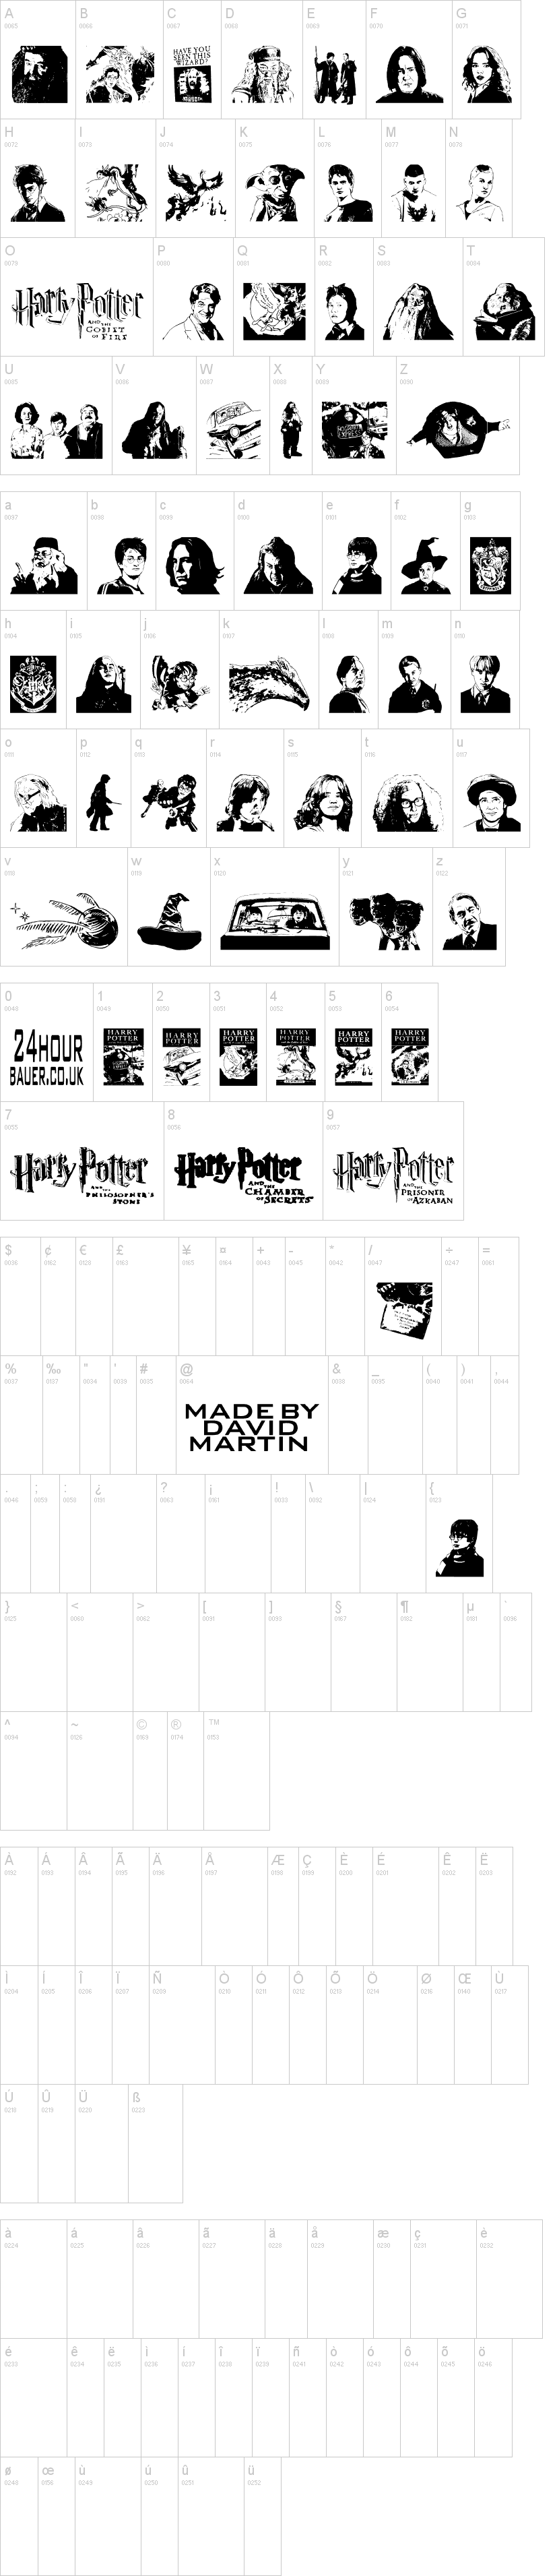 A Harry Potter Dingbat Font Plus This Site Also Has Other Harry  A Harry Potter Dingbat Font Plus This Site Also Has Other Harry Potter  Fonts My Essays Just Got A Lot More Exciting Teaching Essay Writing To High School Students also Custom Writing Pads  Modern Science Essay